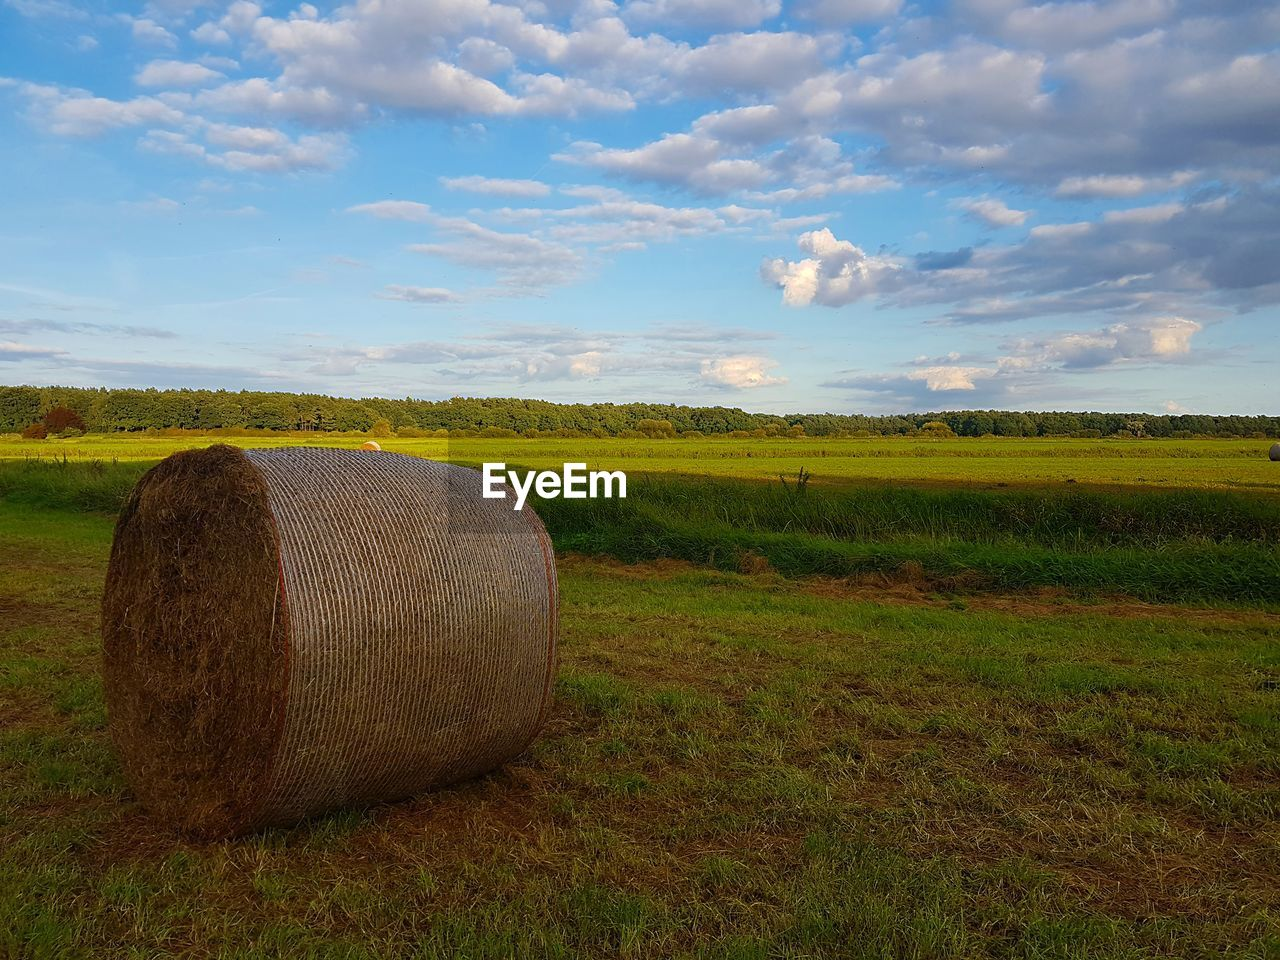 field, agriculture, rural scene, tranquility, farm, landscape, tranquil scene, hay bale, bale, sky, nature, beauty in nature, scenics, crop, hay, no people, cloud - sky, day, outdoors, grass, growth